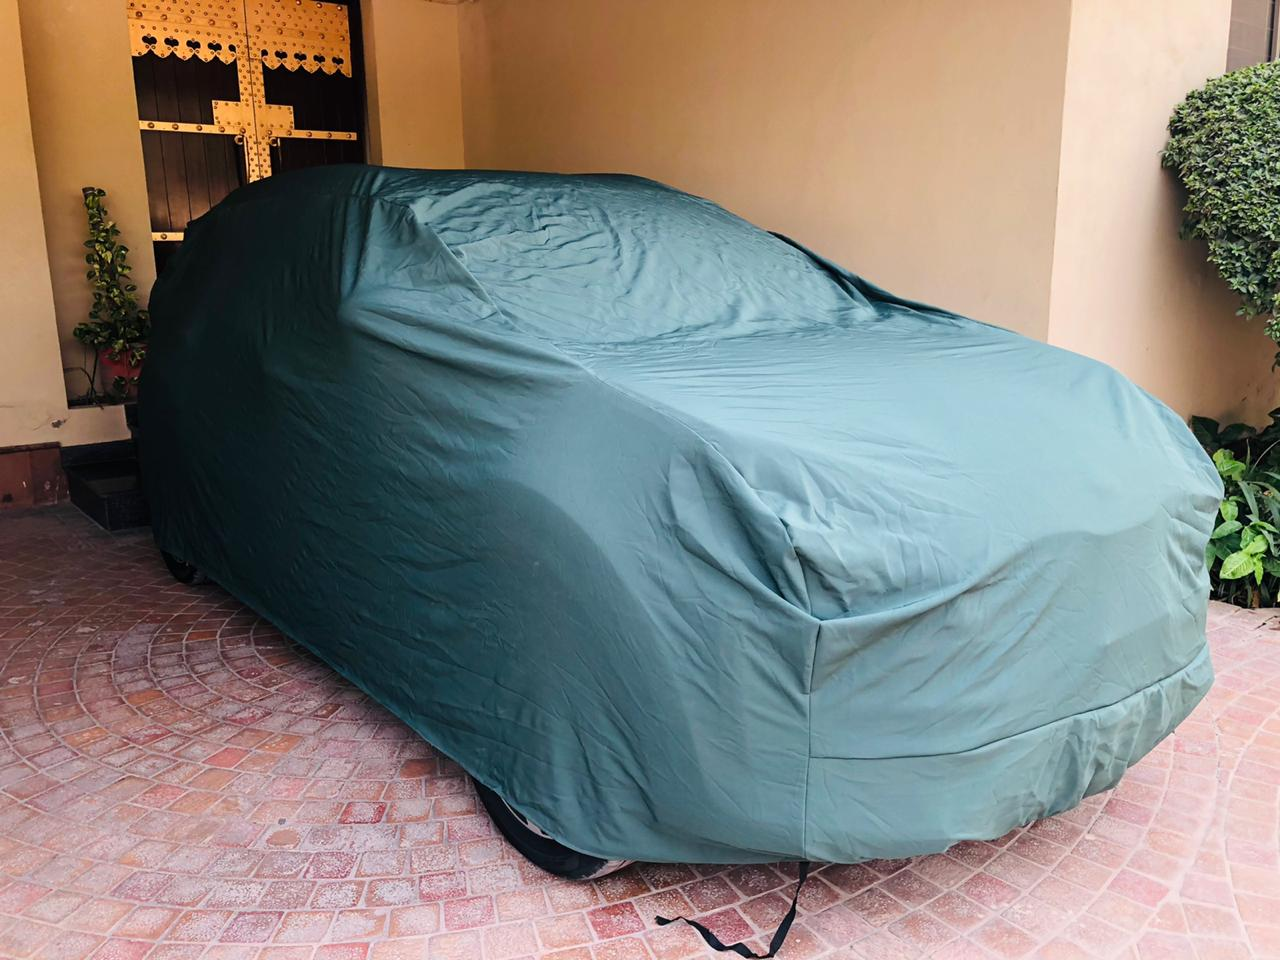 BMW X5 Model 2013-2017 Microfiber Car Top Cover